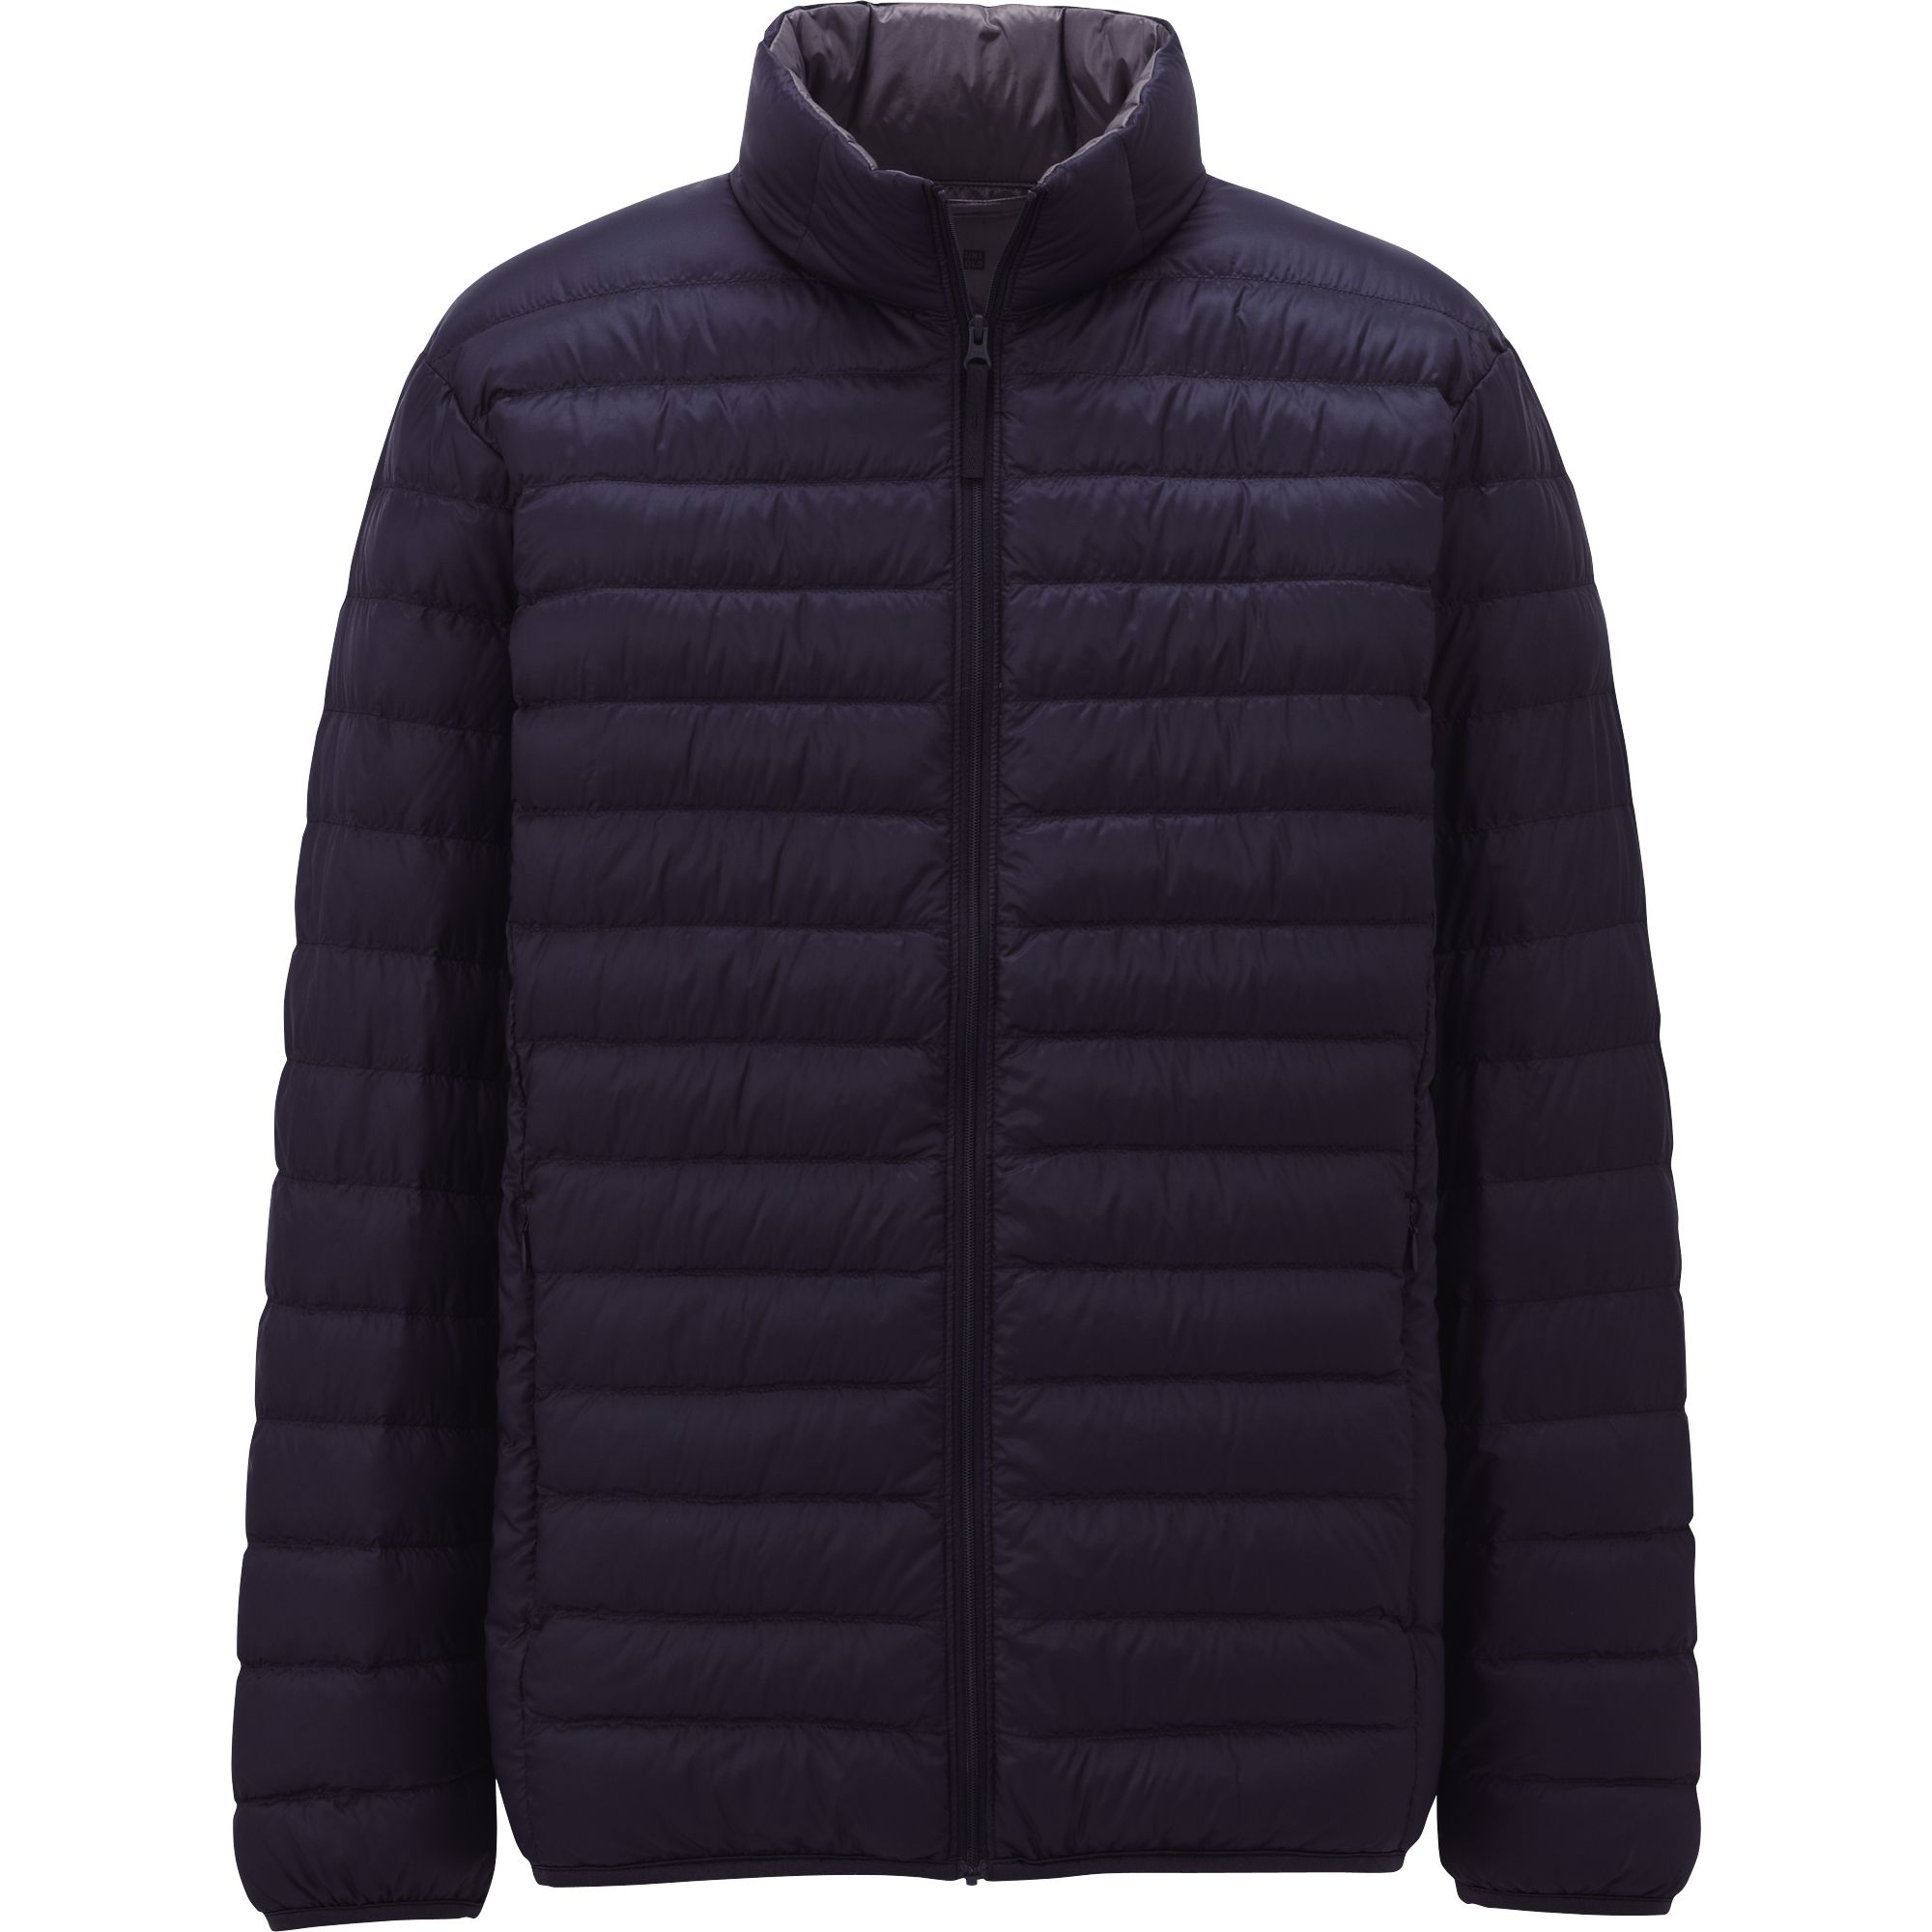 uniqlo ultra light down jacket in black for men blue lyst. Black Bedroom Furniture Sets. Home Design Ideas